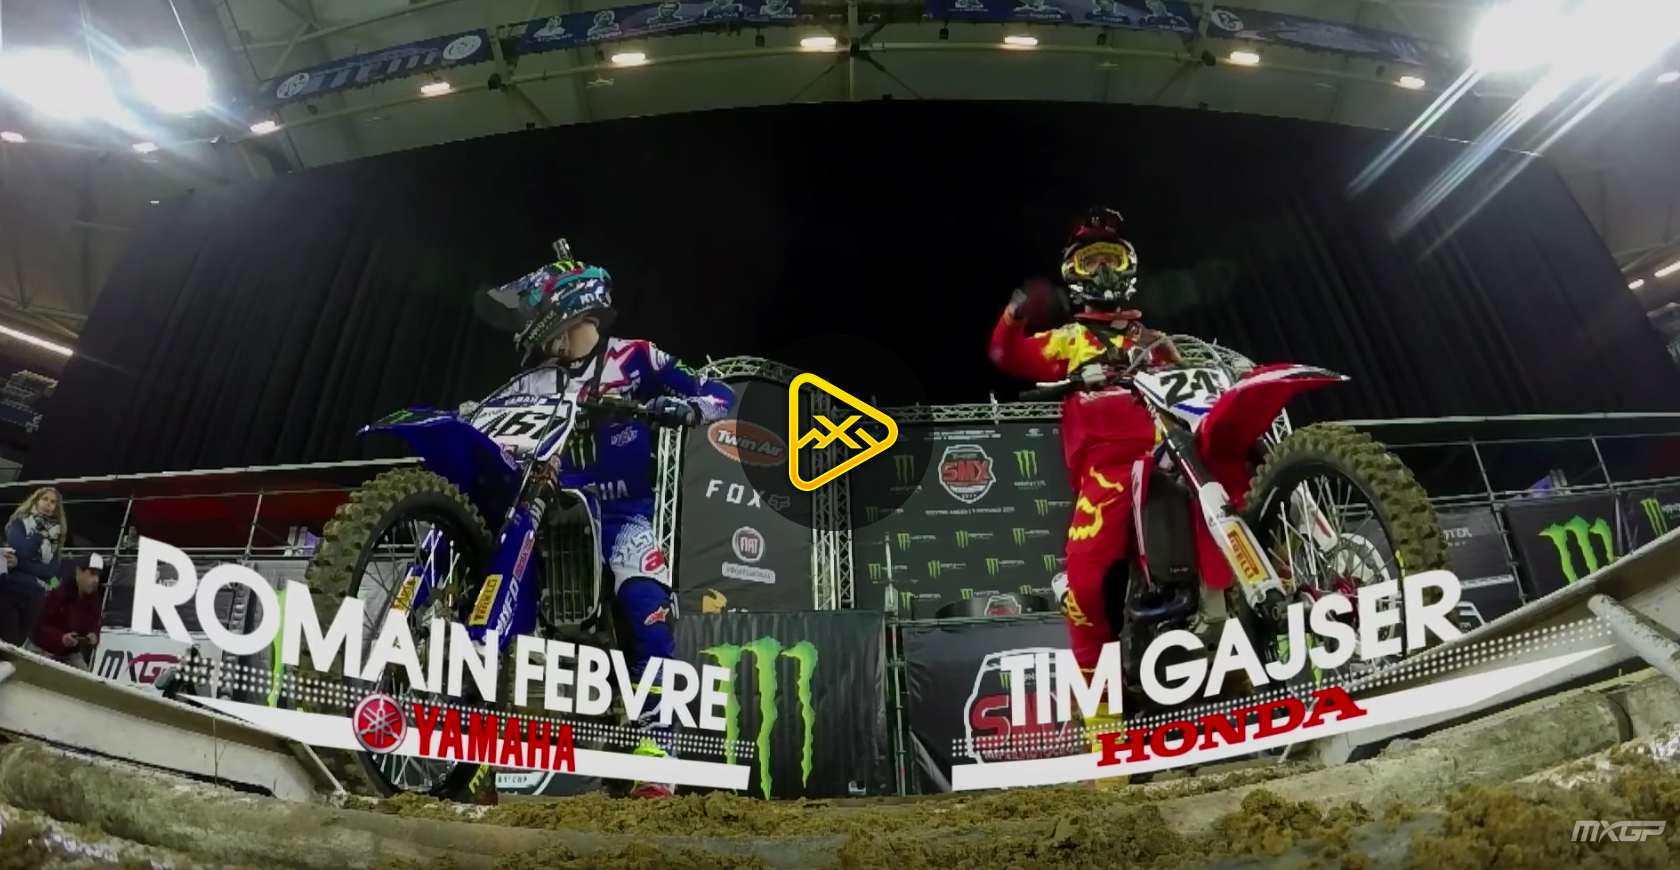 Helmet Cam: Gasjer & Febvre Take Lap at 2016 SMX Riders Cup